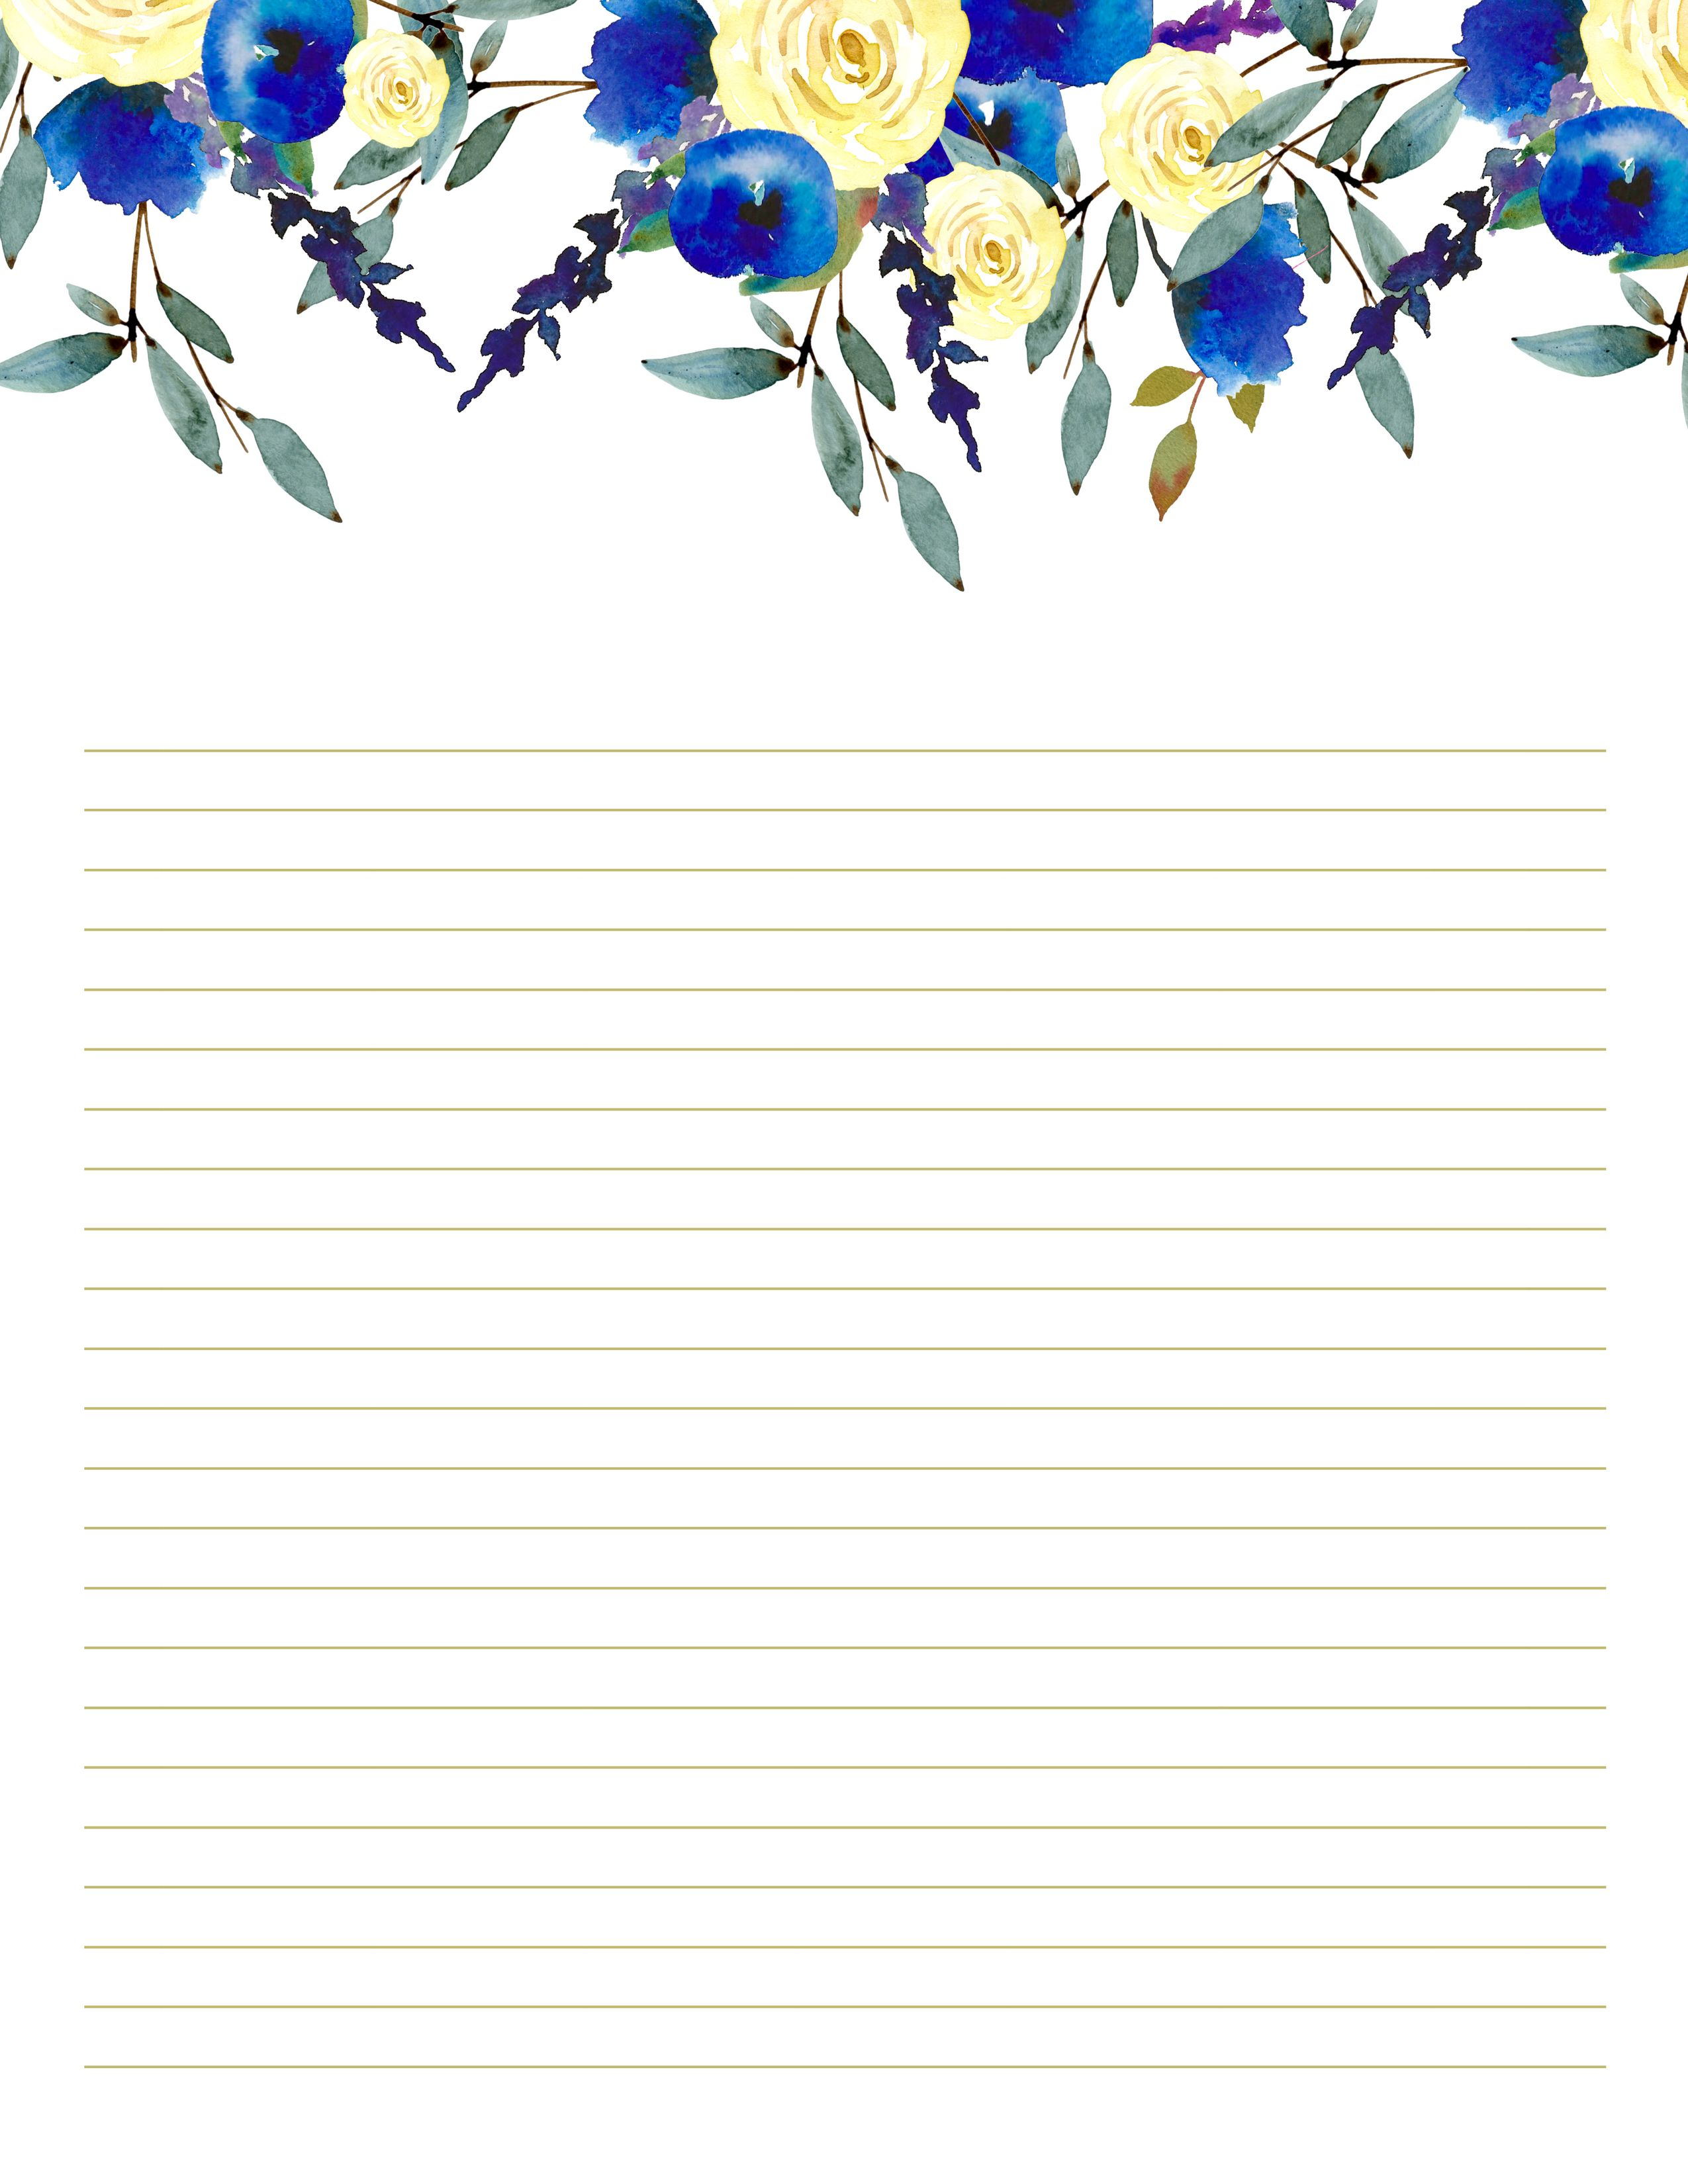 Stationery Printables Writing Paper Printable Stationery Writing Paper Printable Floral Stationary Letter writing paper free printable